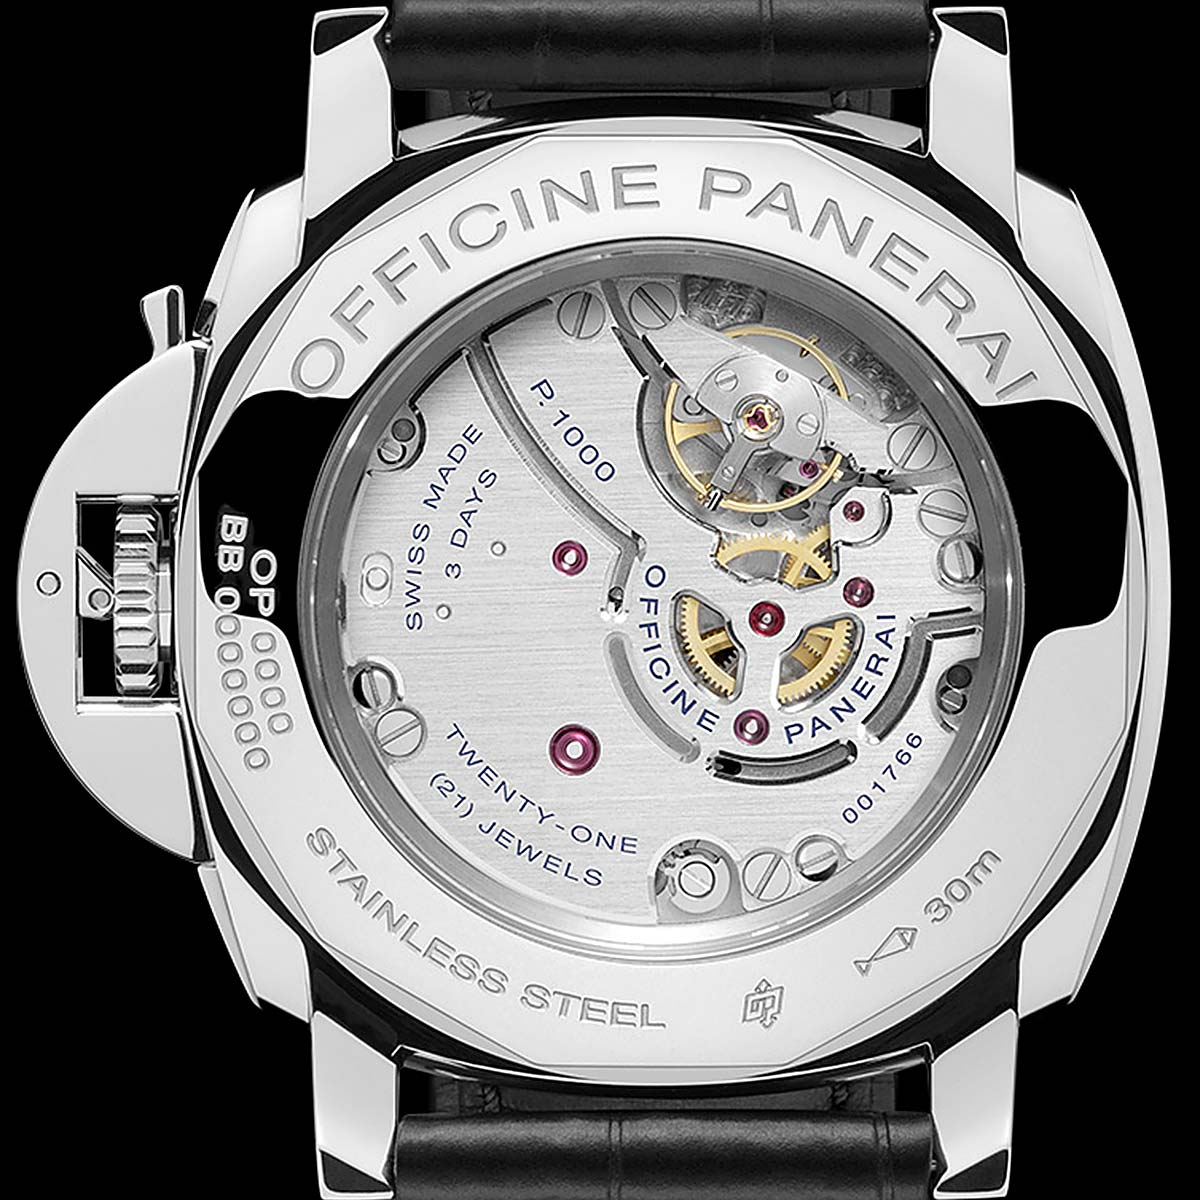 Panerai caliber P.1000 In-House Manual-Wind